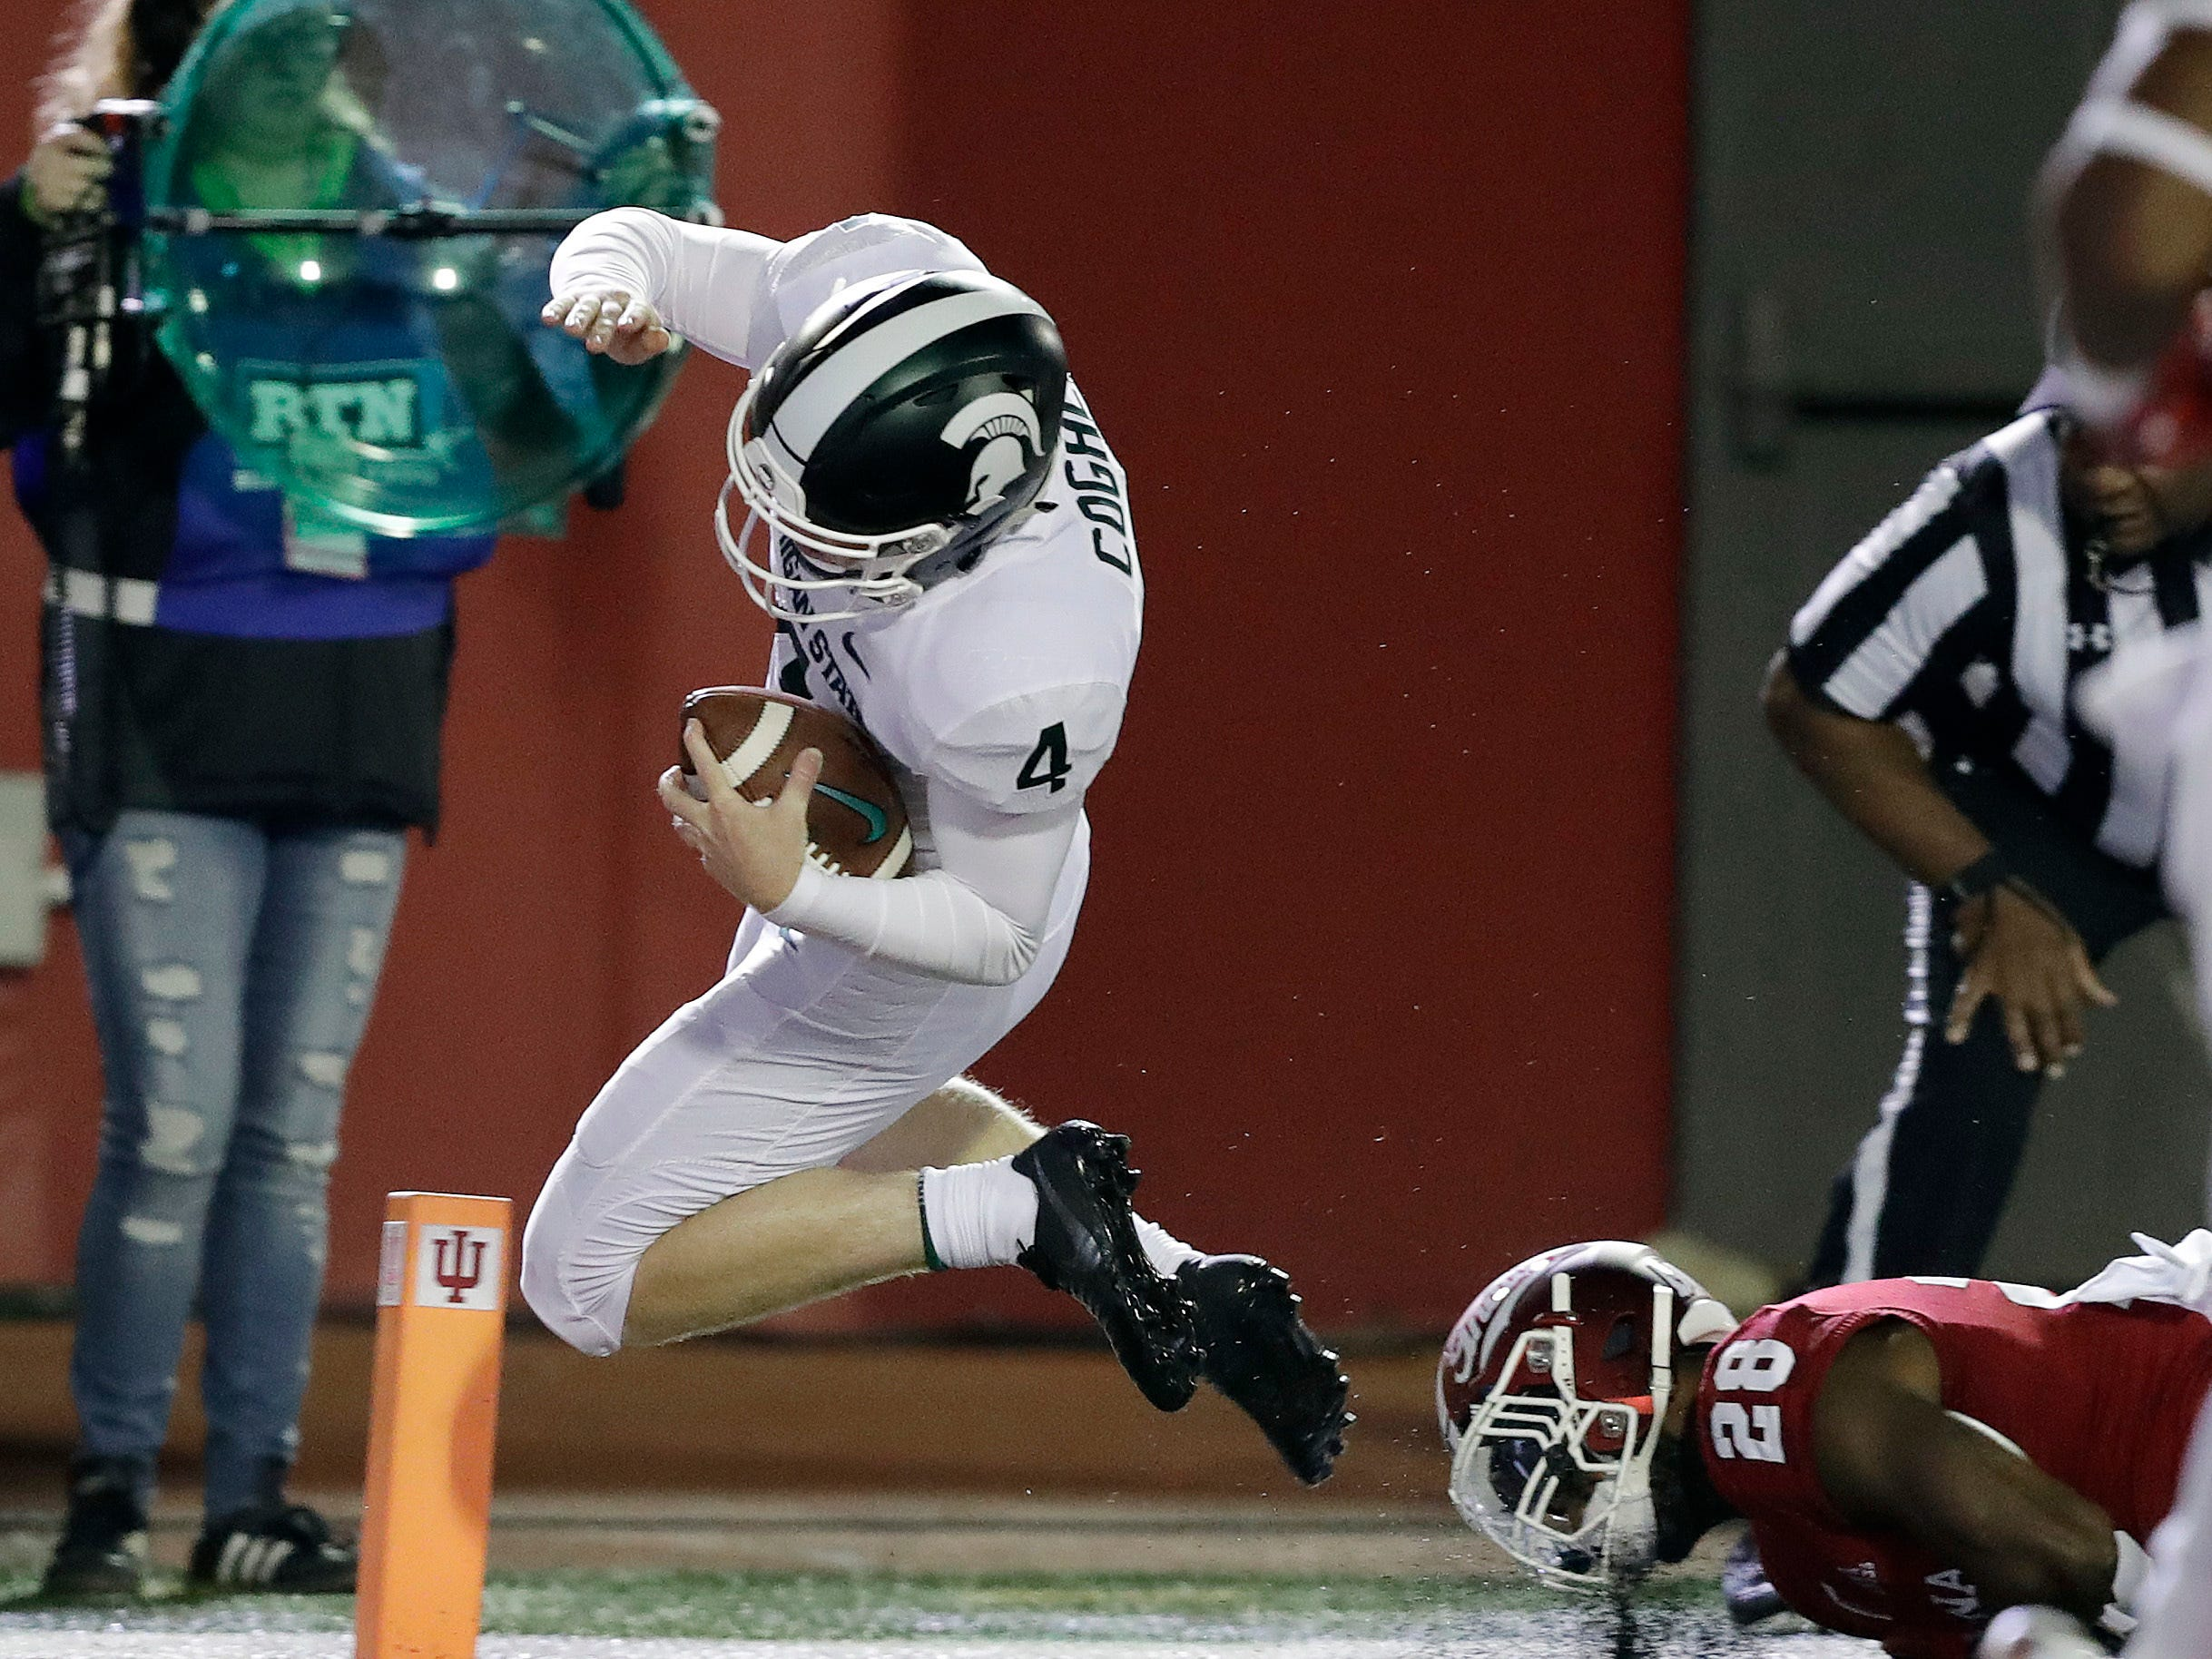 Michigan State's Matt Coghlin (4) dives for a touchdown against Indiana's A'Shon Riggins during the second half of an NCAA college football game, Saturday, Sept. 22, 2018, in Bloomington, Ind. Michigan State won 35-21.